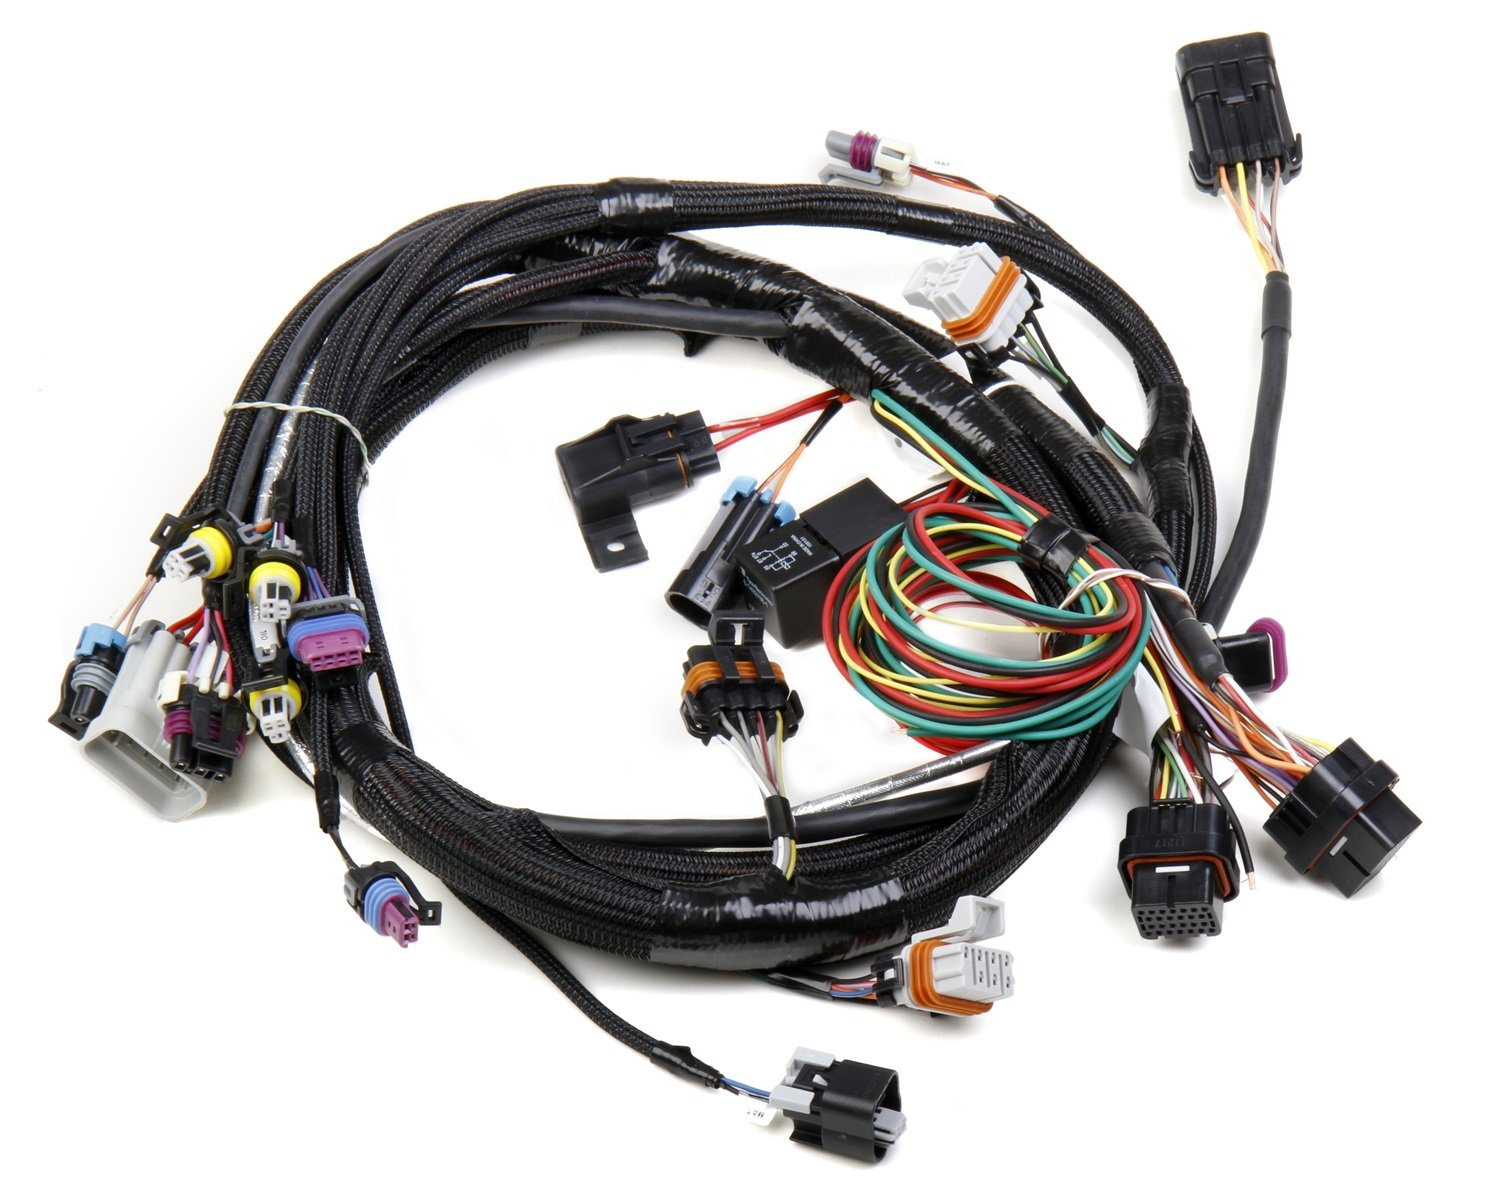 71R9M48Oc L._SL1500_ amazon com holley 558 102 ls1 main harness automotive 6.5 Diesel Wiring Harness at pacquiaovsvargaslive.co